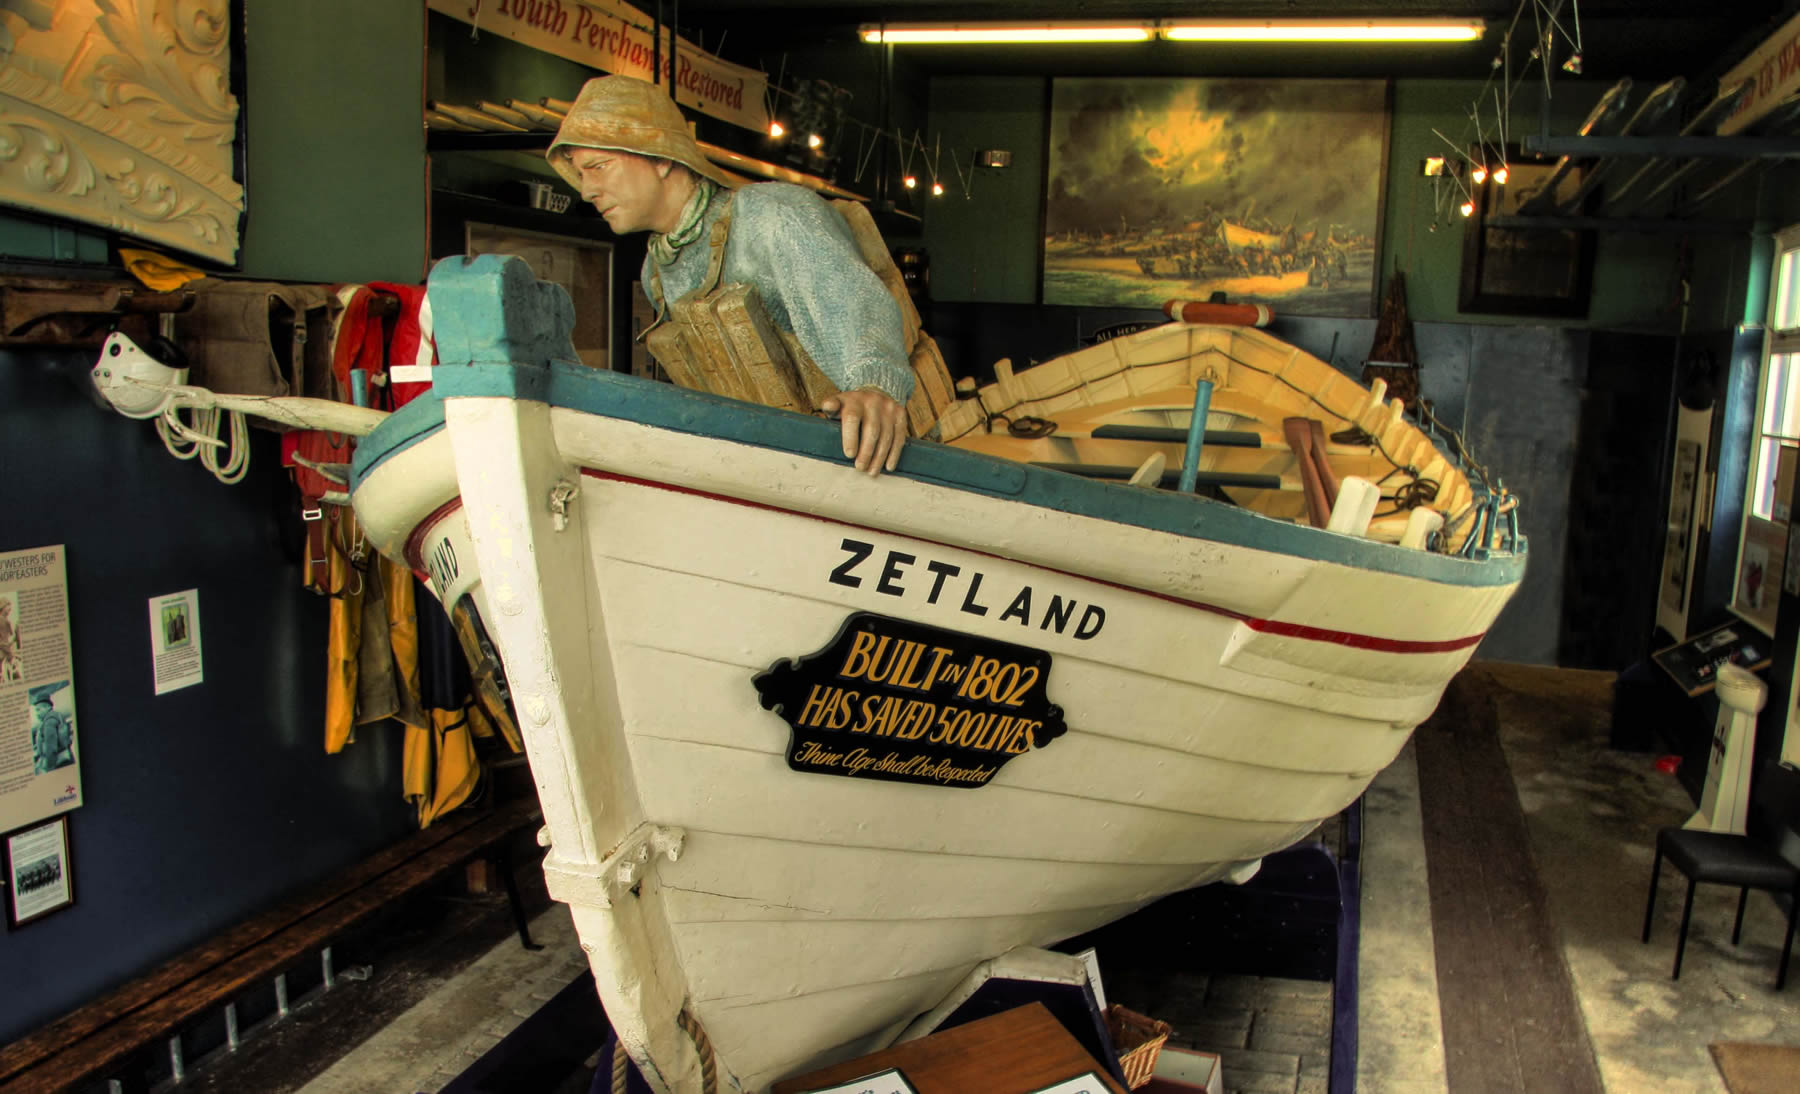 Zetland – the end of a journey